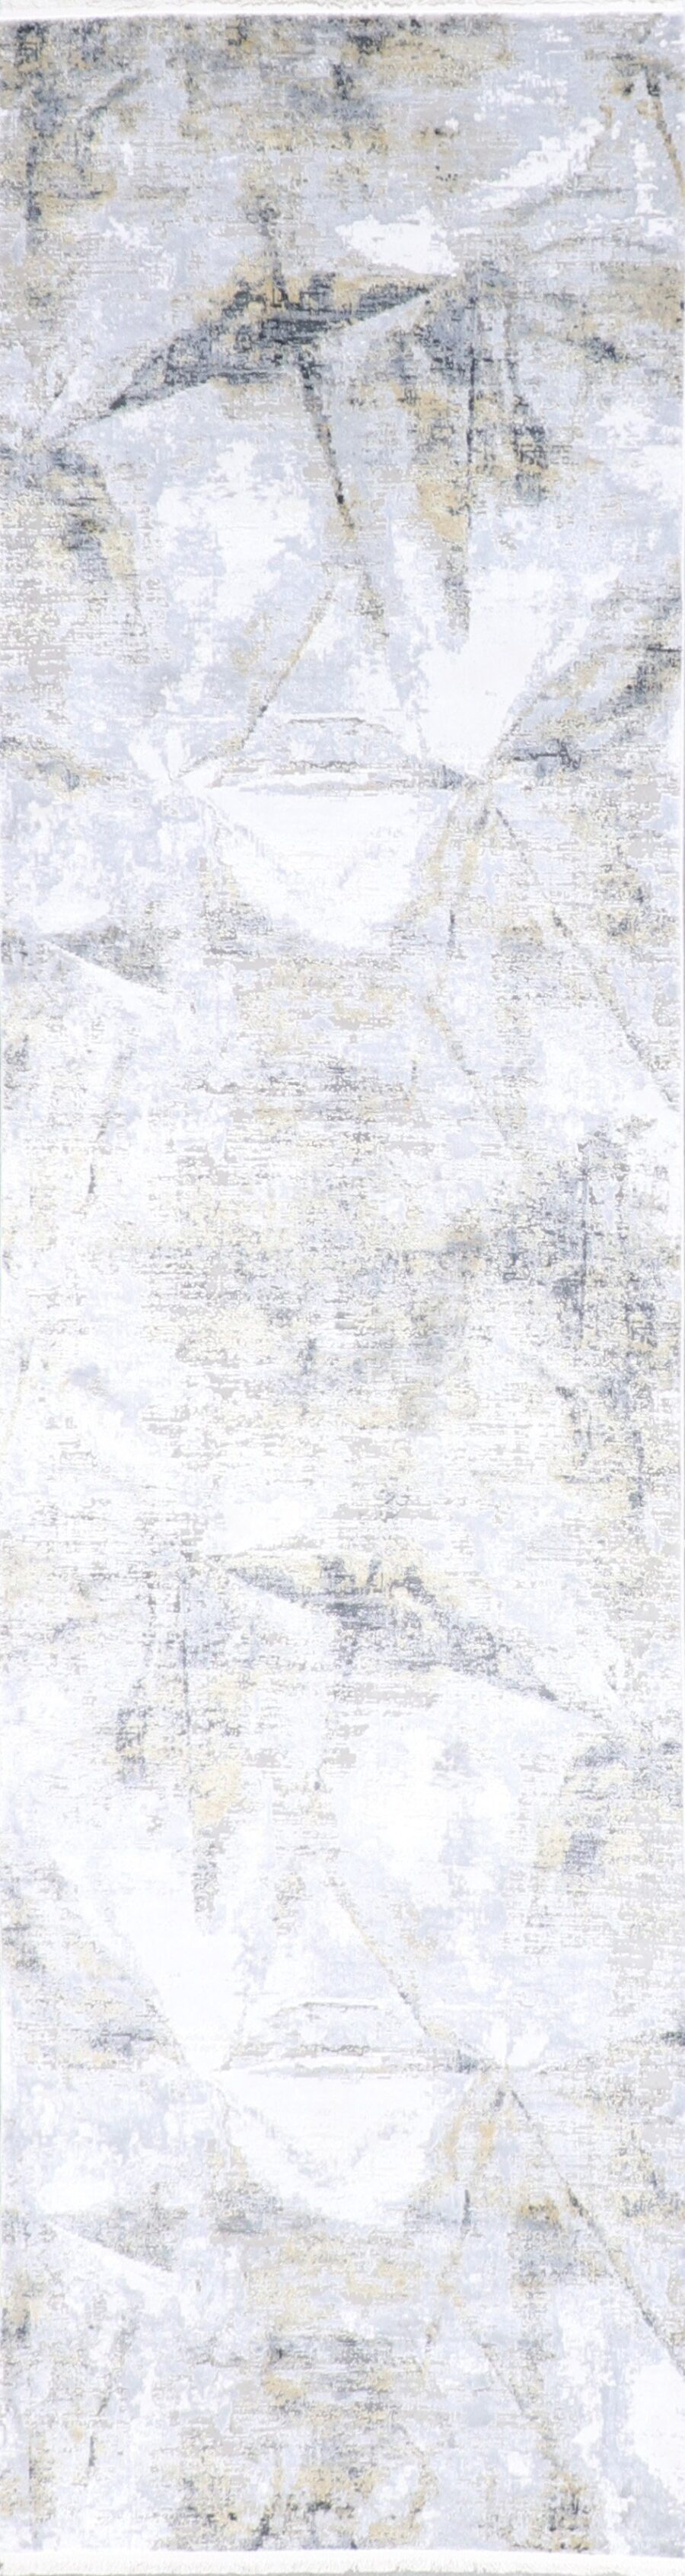 """2'7""""x10' Transitional Gray Wool & Silk Hand-Finished Rug - Direct Rug Import   Rugs in Chicago, Indiana,South Bend,Granger"""